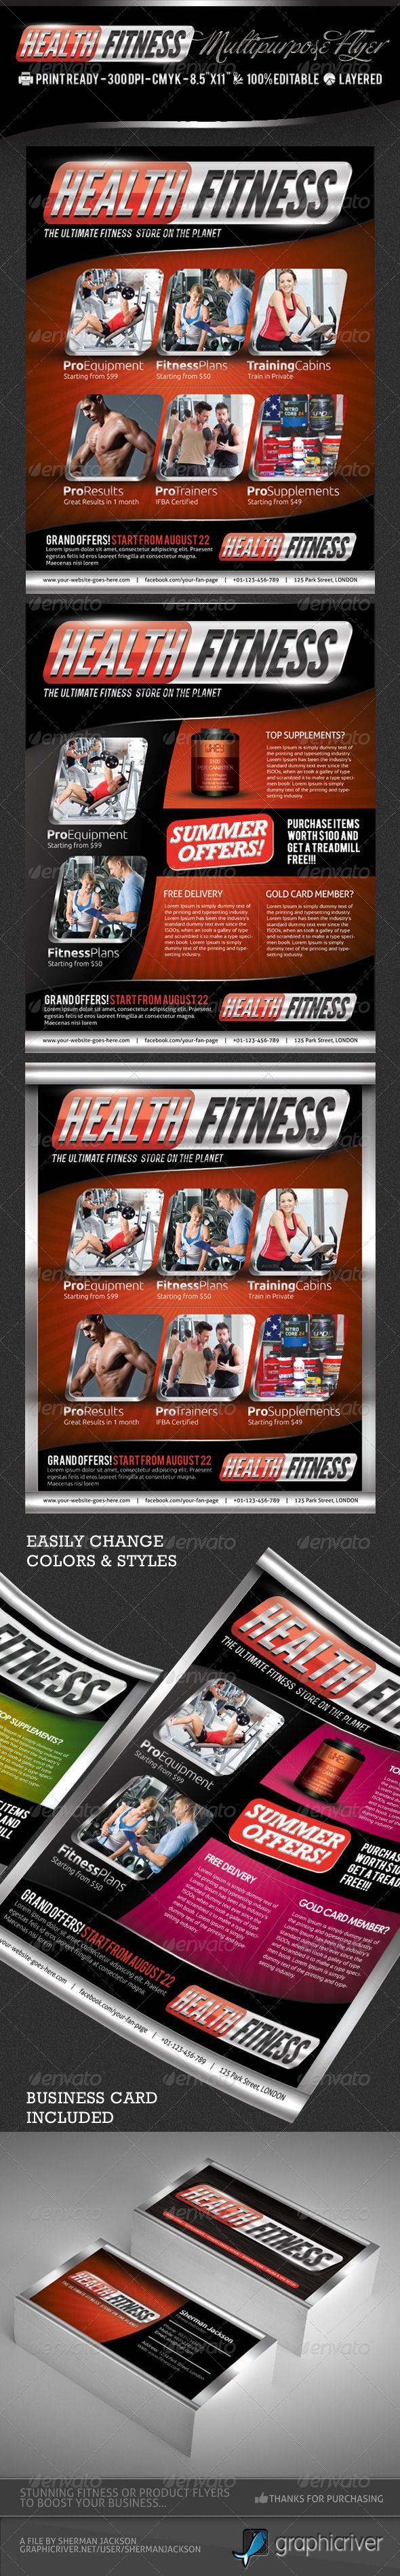 health fitness pro flyer business card psd